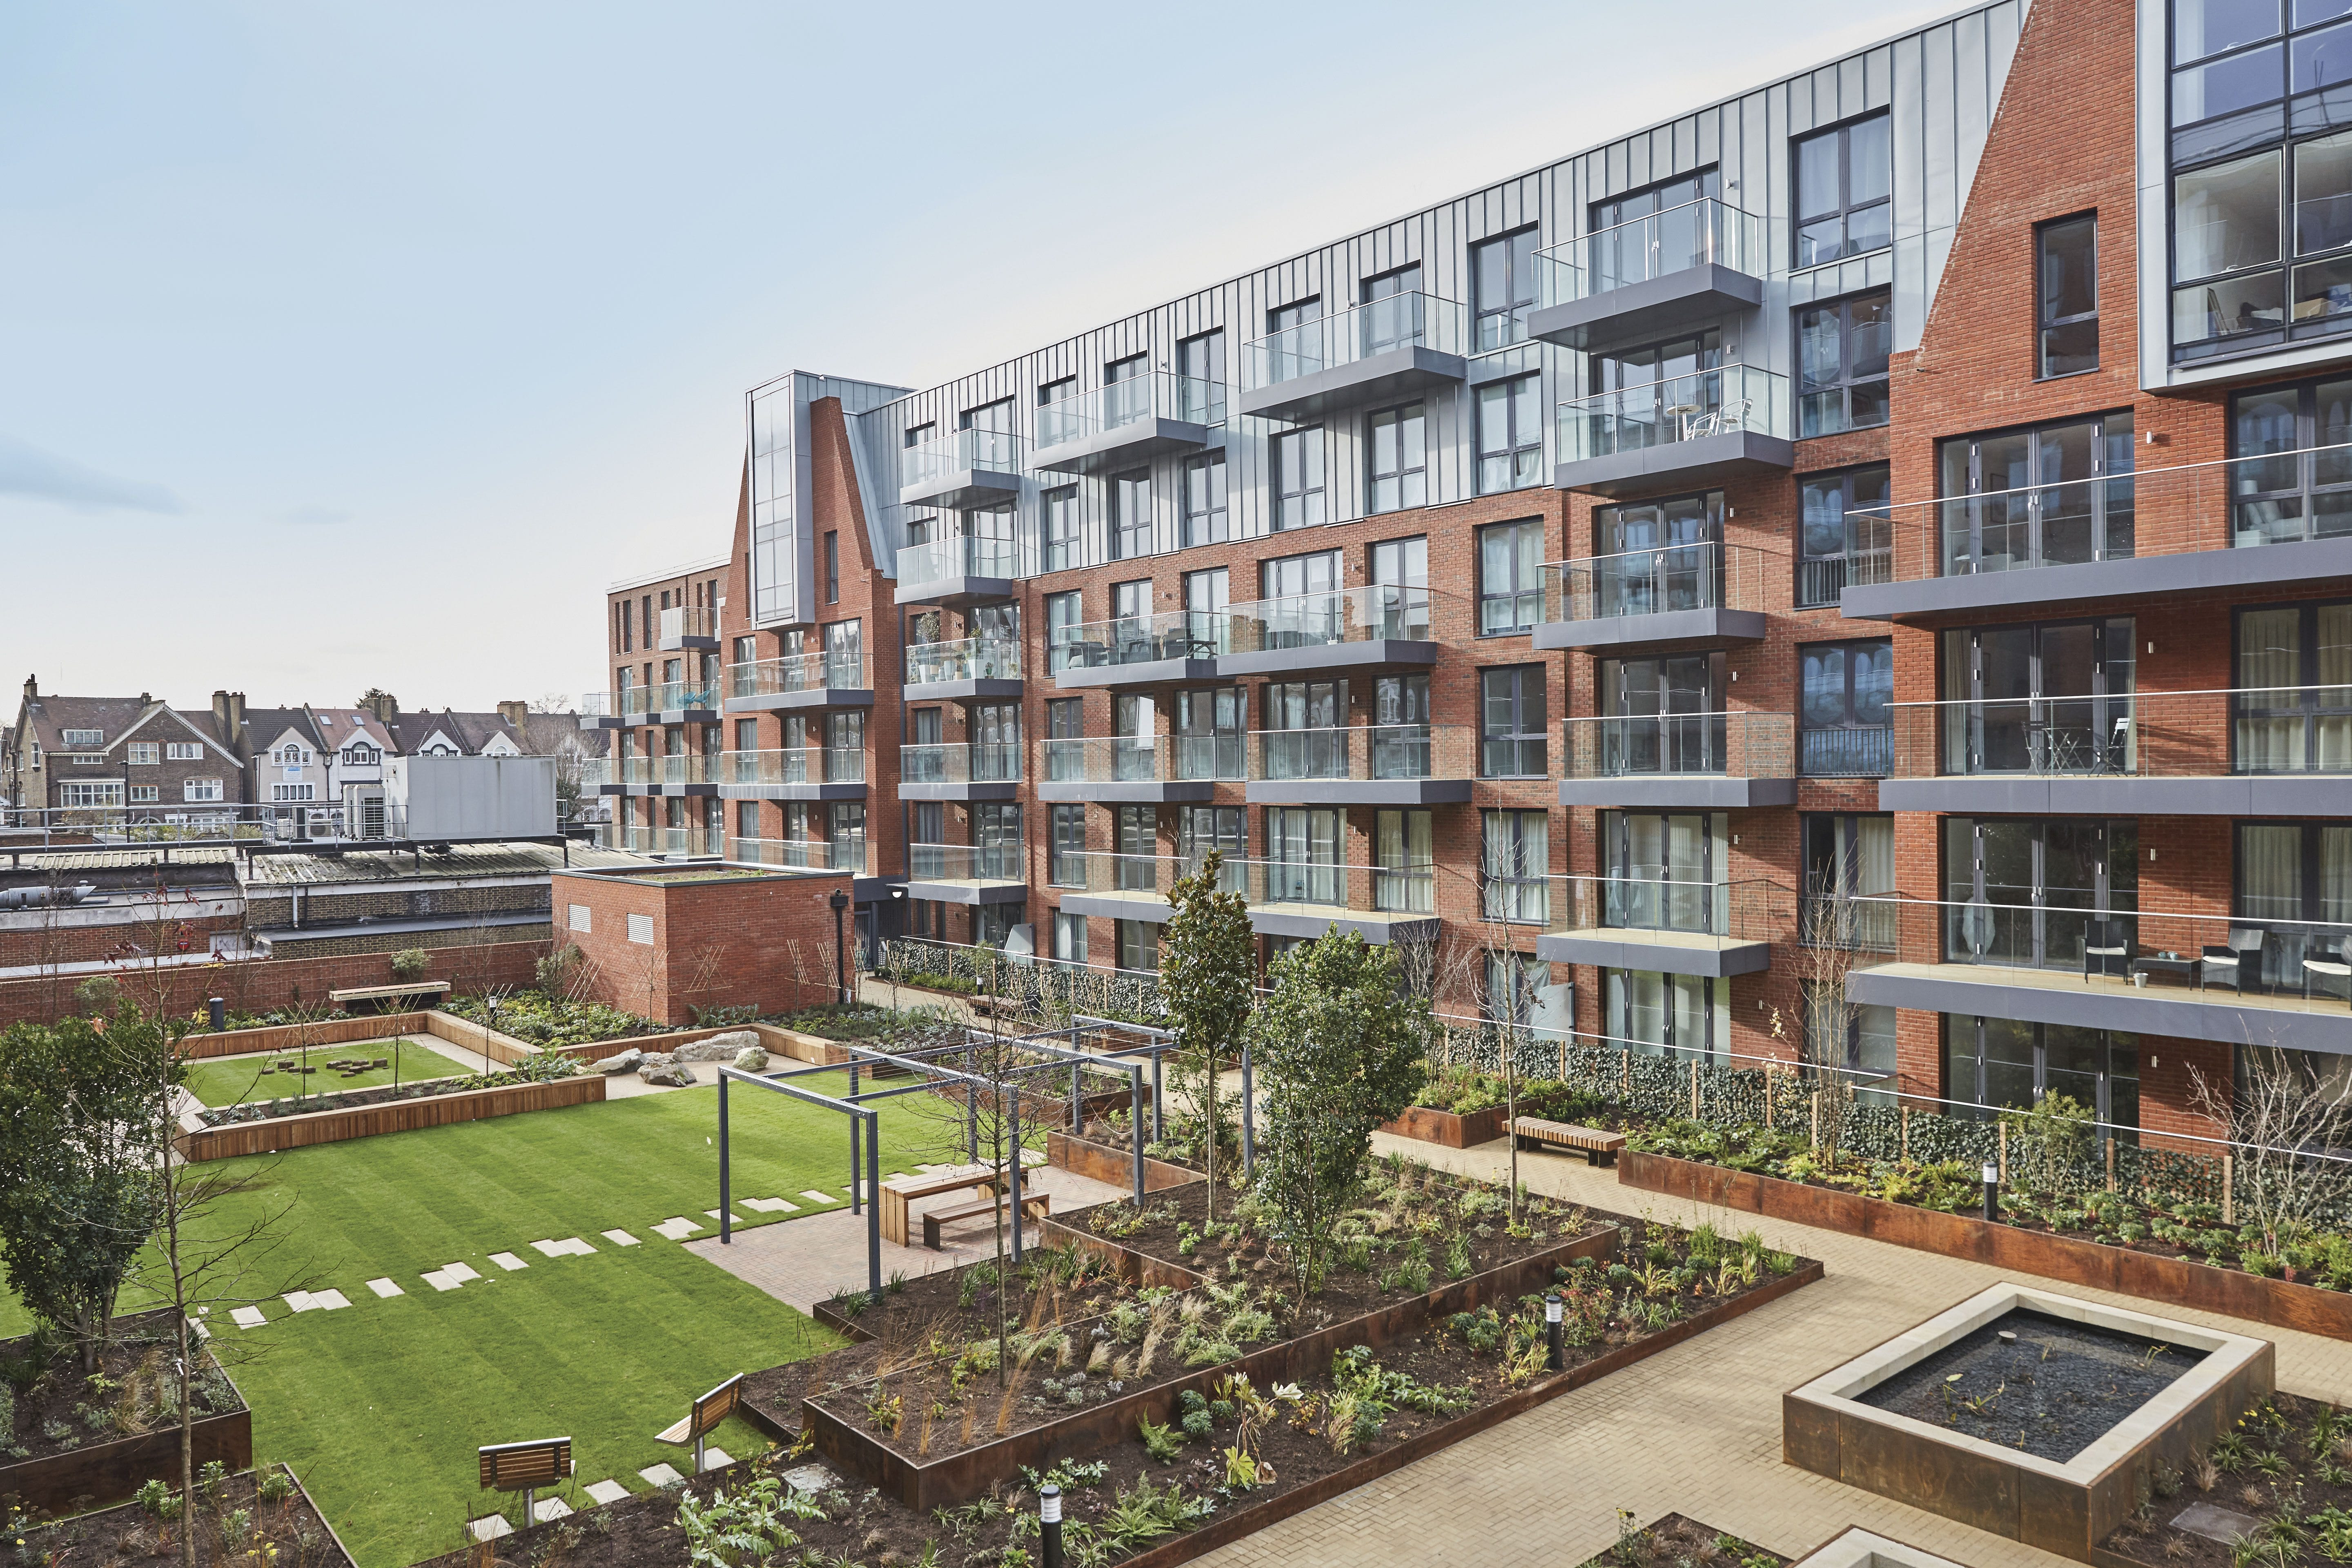 Westcoast Windows Swedish composite windows are the ideal energy saving glazing solution for this development of high specification apartments in Streatham Hill